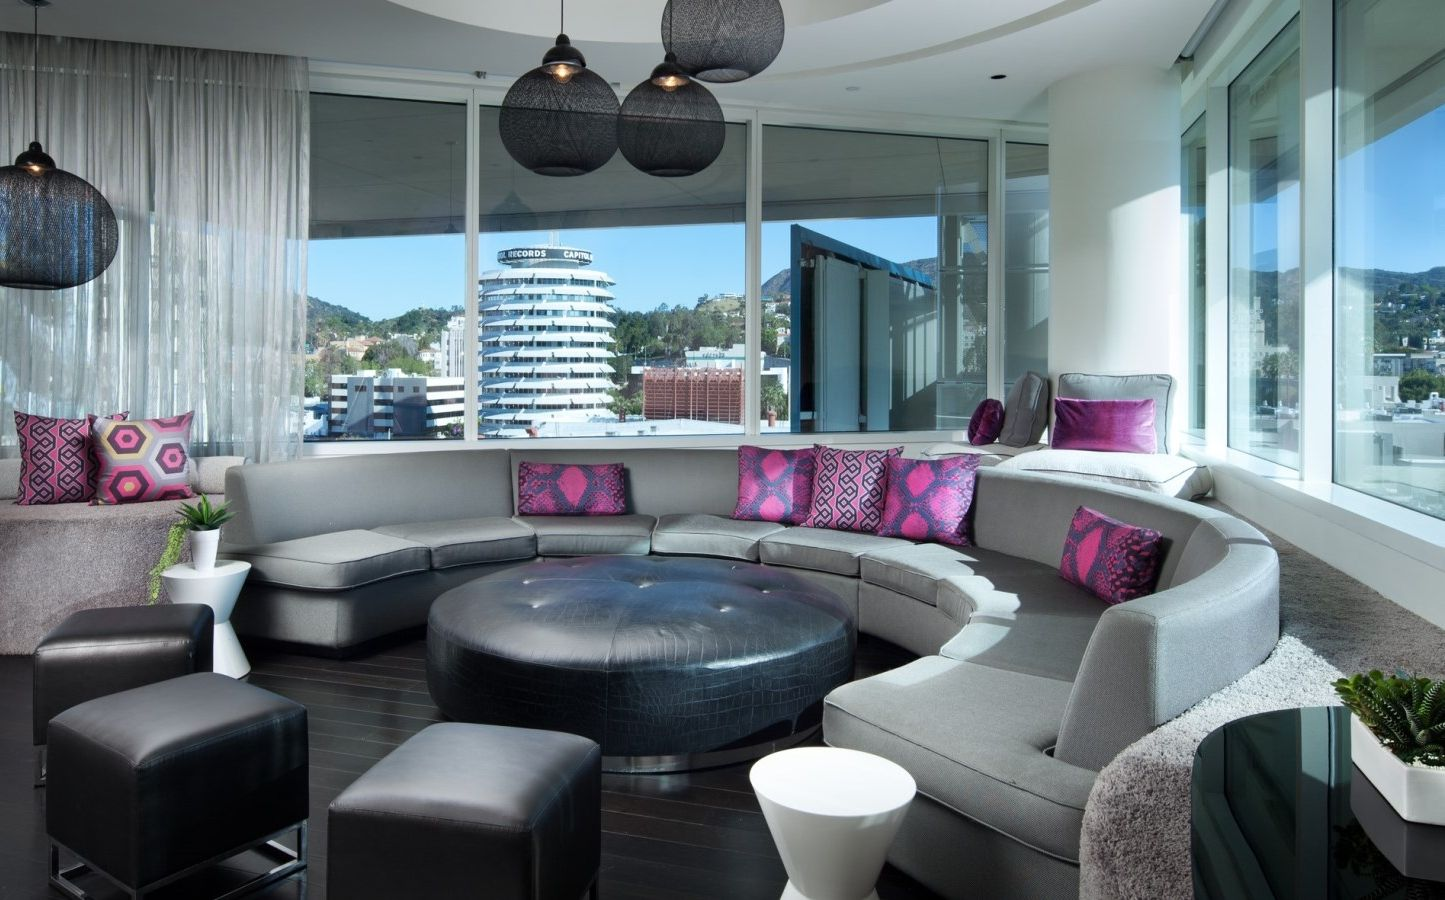 extreme wow suite  w hollywood hotel - hollywood accommodation  extreme wow suite  w hollywood hotel